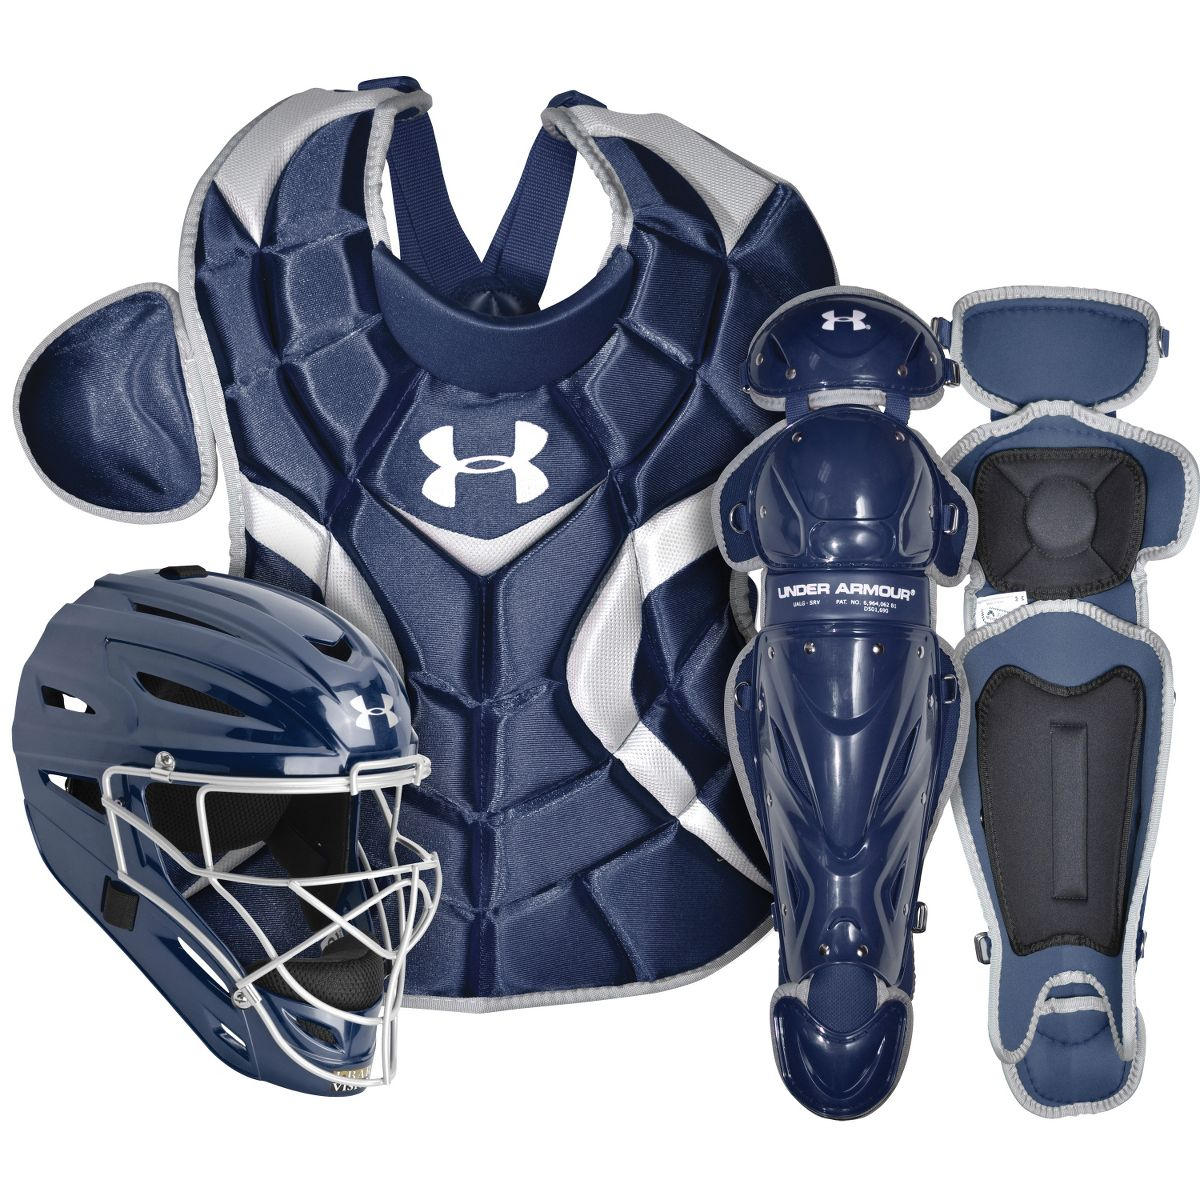 Under Armour Victory Series Senior Catchers Set UACK2-SRVS Navy by